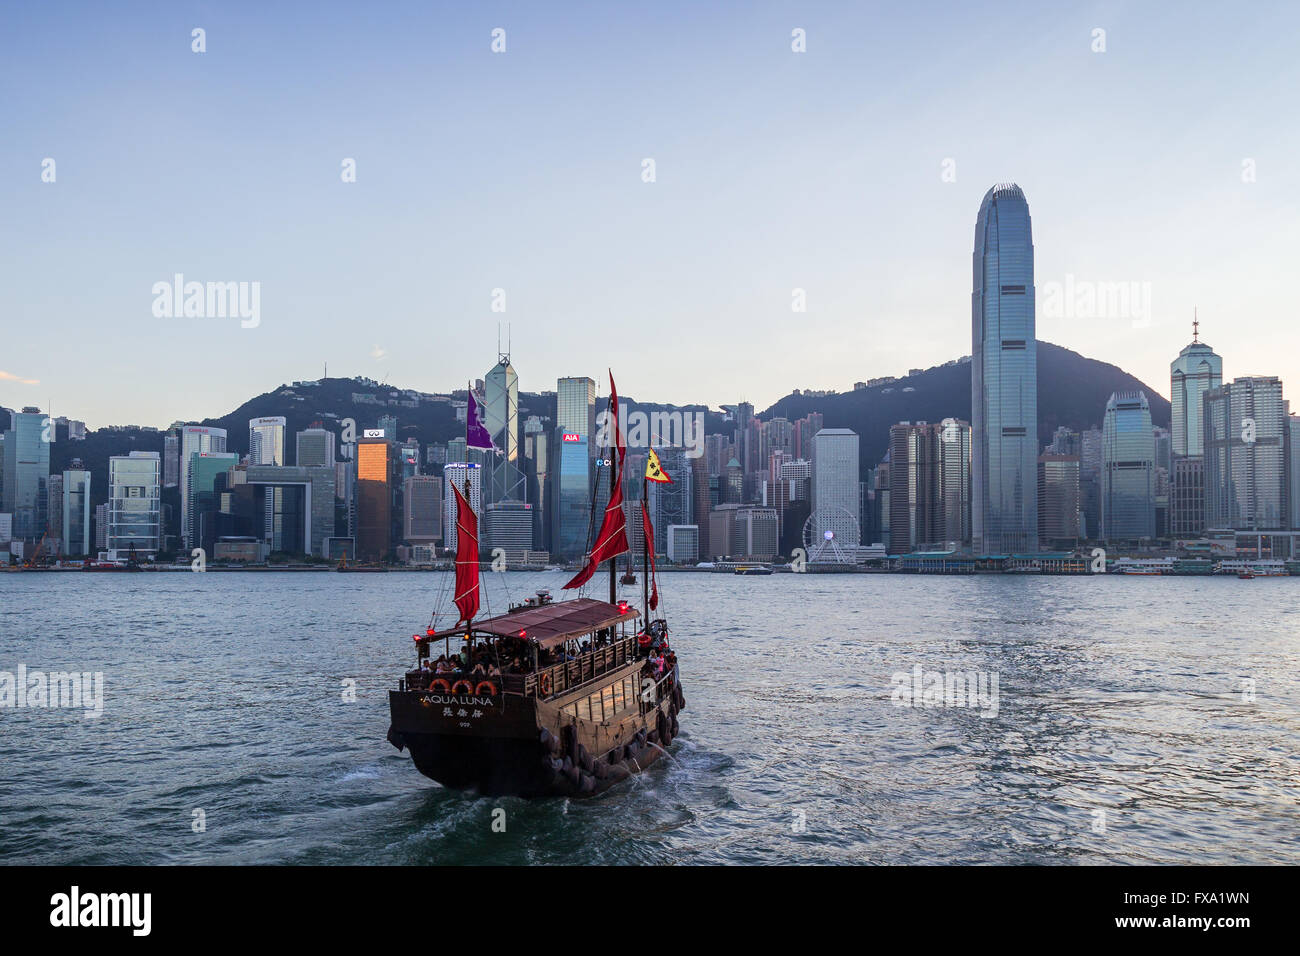 Tourist junk at the Victoria Harbour and Hong Kong Island's skyline in Hong Kong, China. - Stock Image